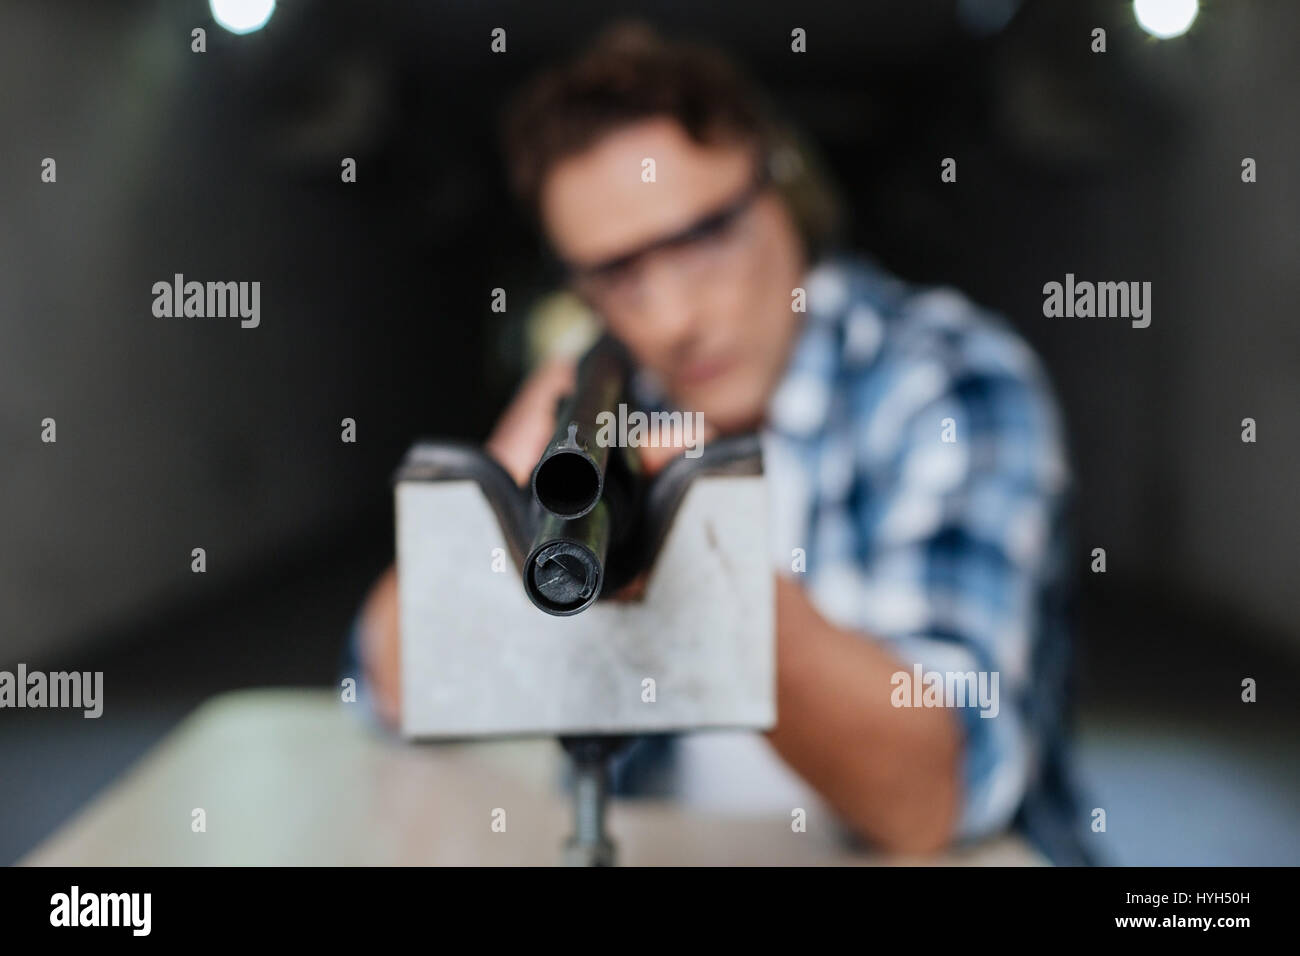 Confident professional marksman aiming at you - Stock Image